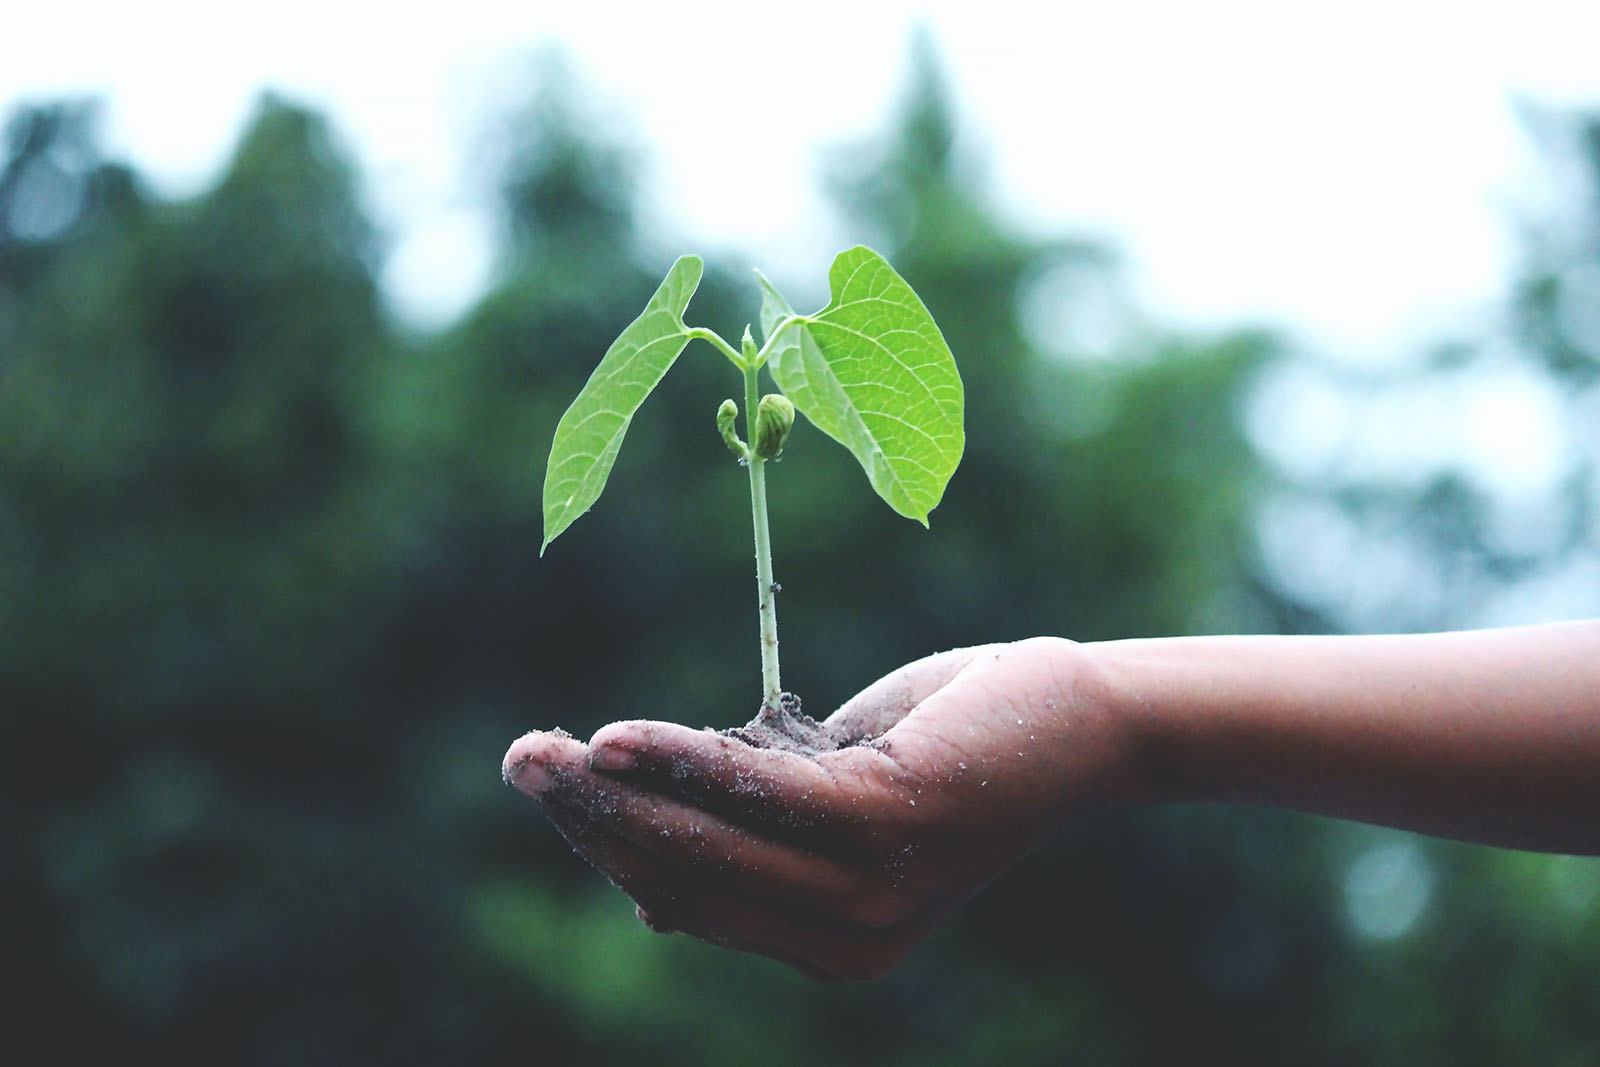 A seedling growing from the soil in a person's hand.